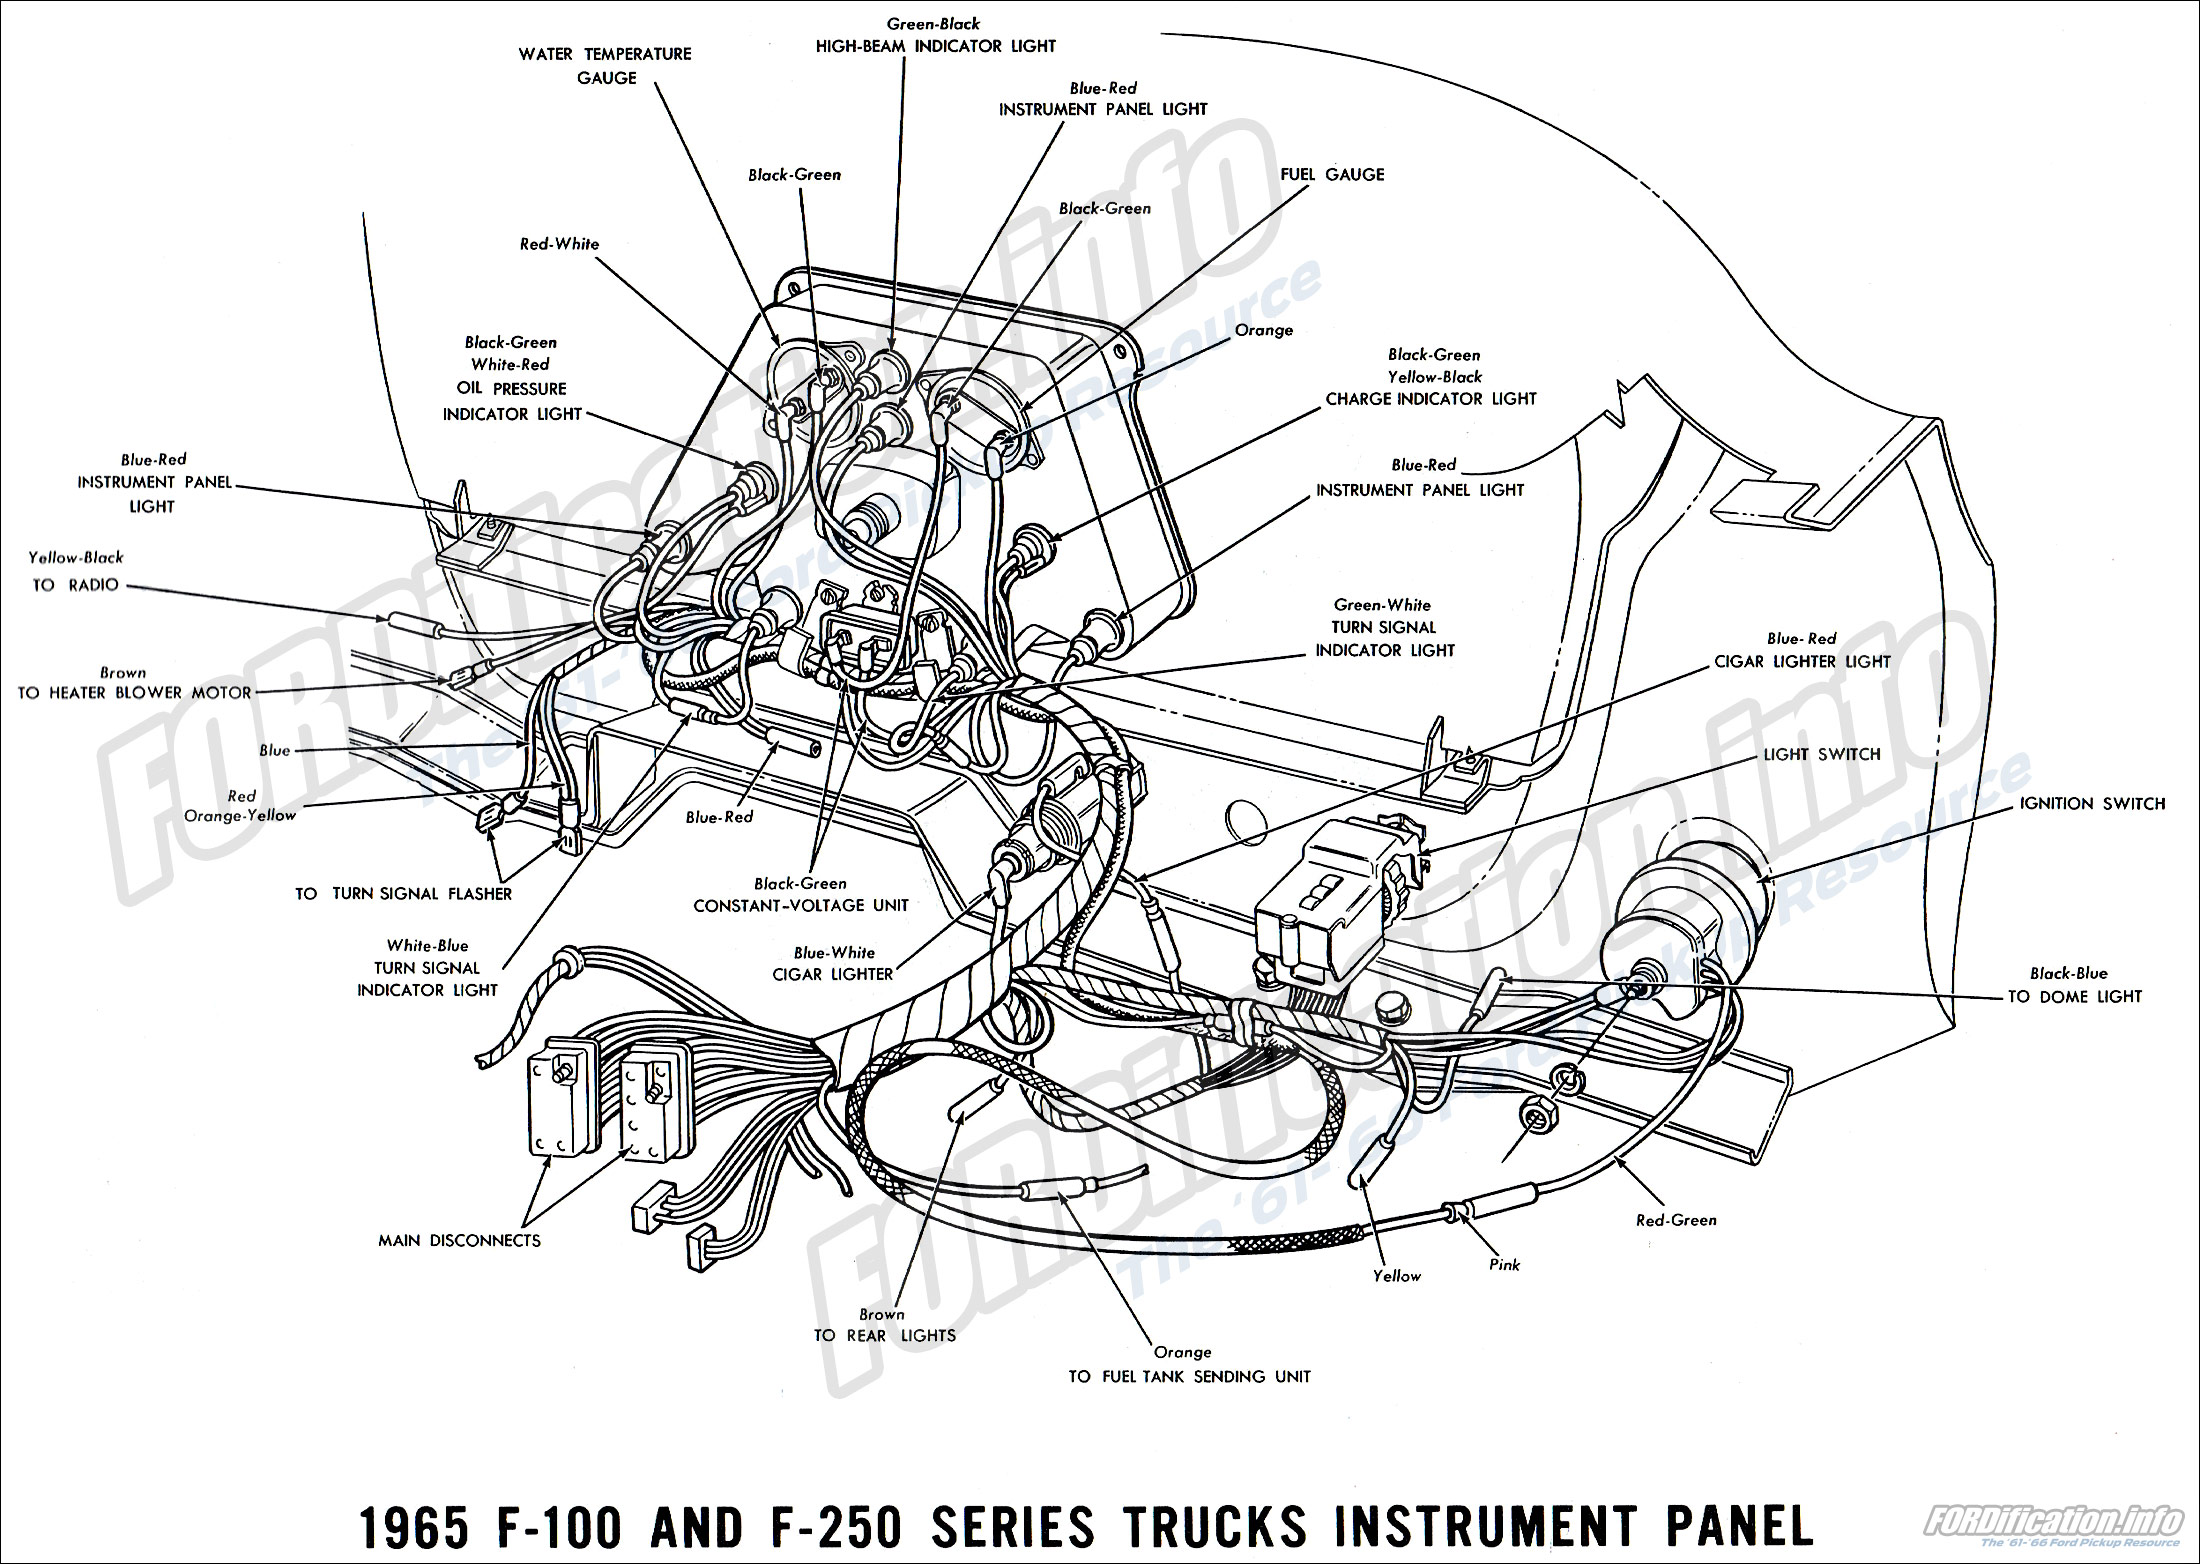 1965 ford truck wiring diagrams fordification info the '61 '66 65 ford f100 parts 1965 f 100 and f 250 series truck instrument panel